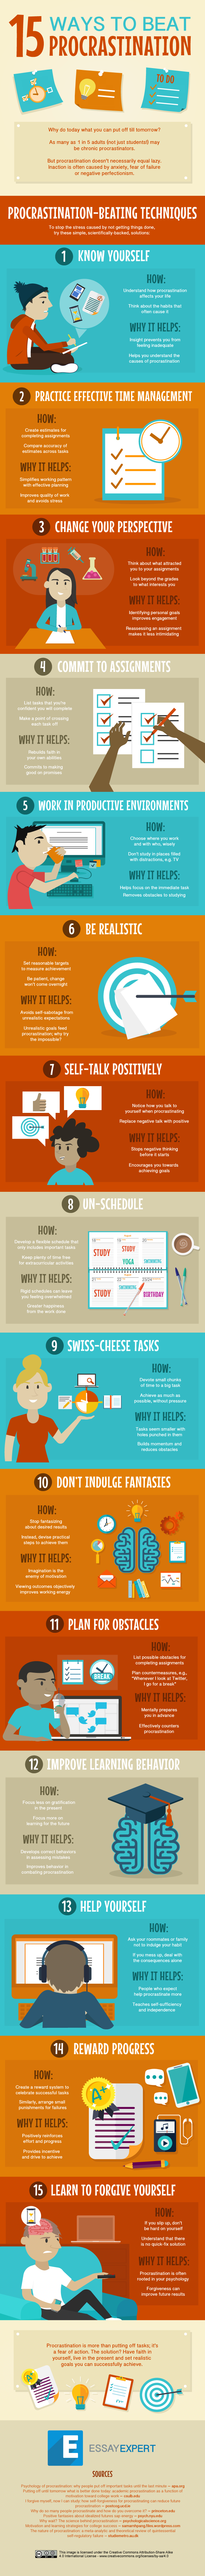 ways to beat procrastination infographic essay expert